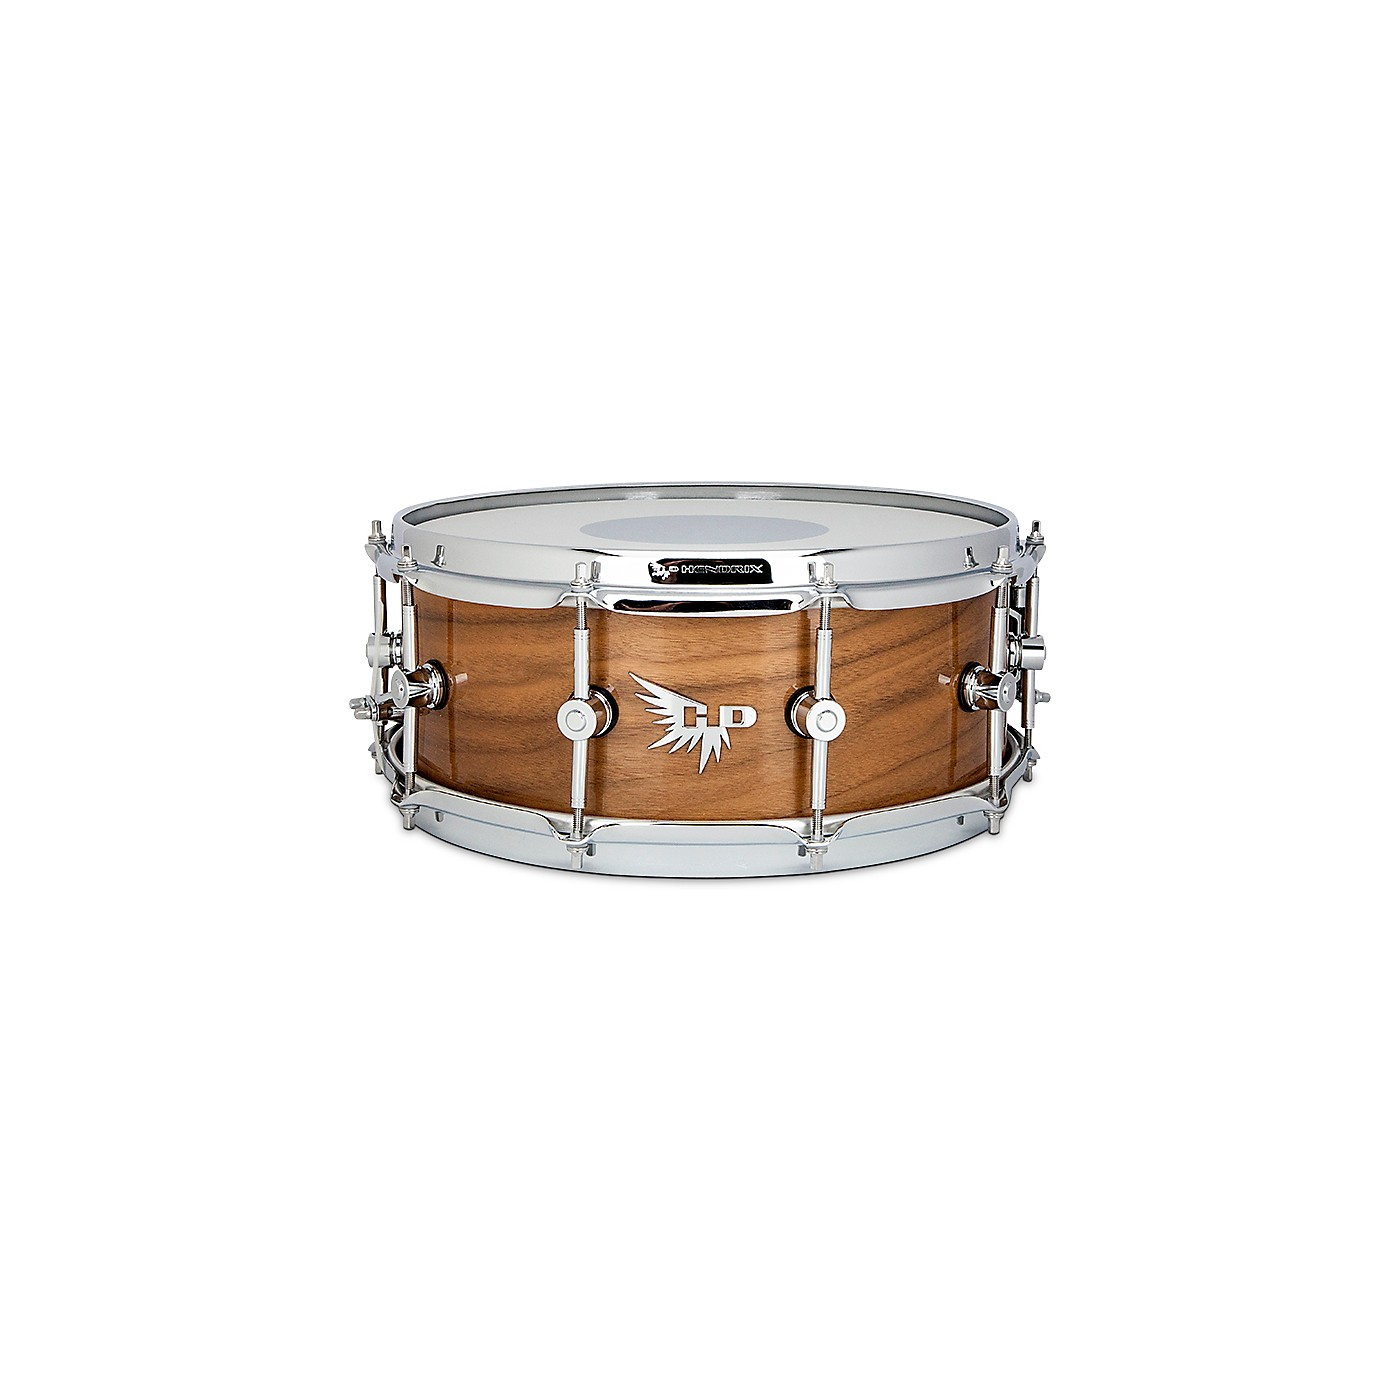 Hendrix Drums Perfect Ply Walnut Snare Drum thumbnail